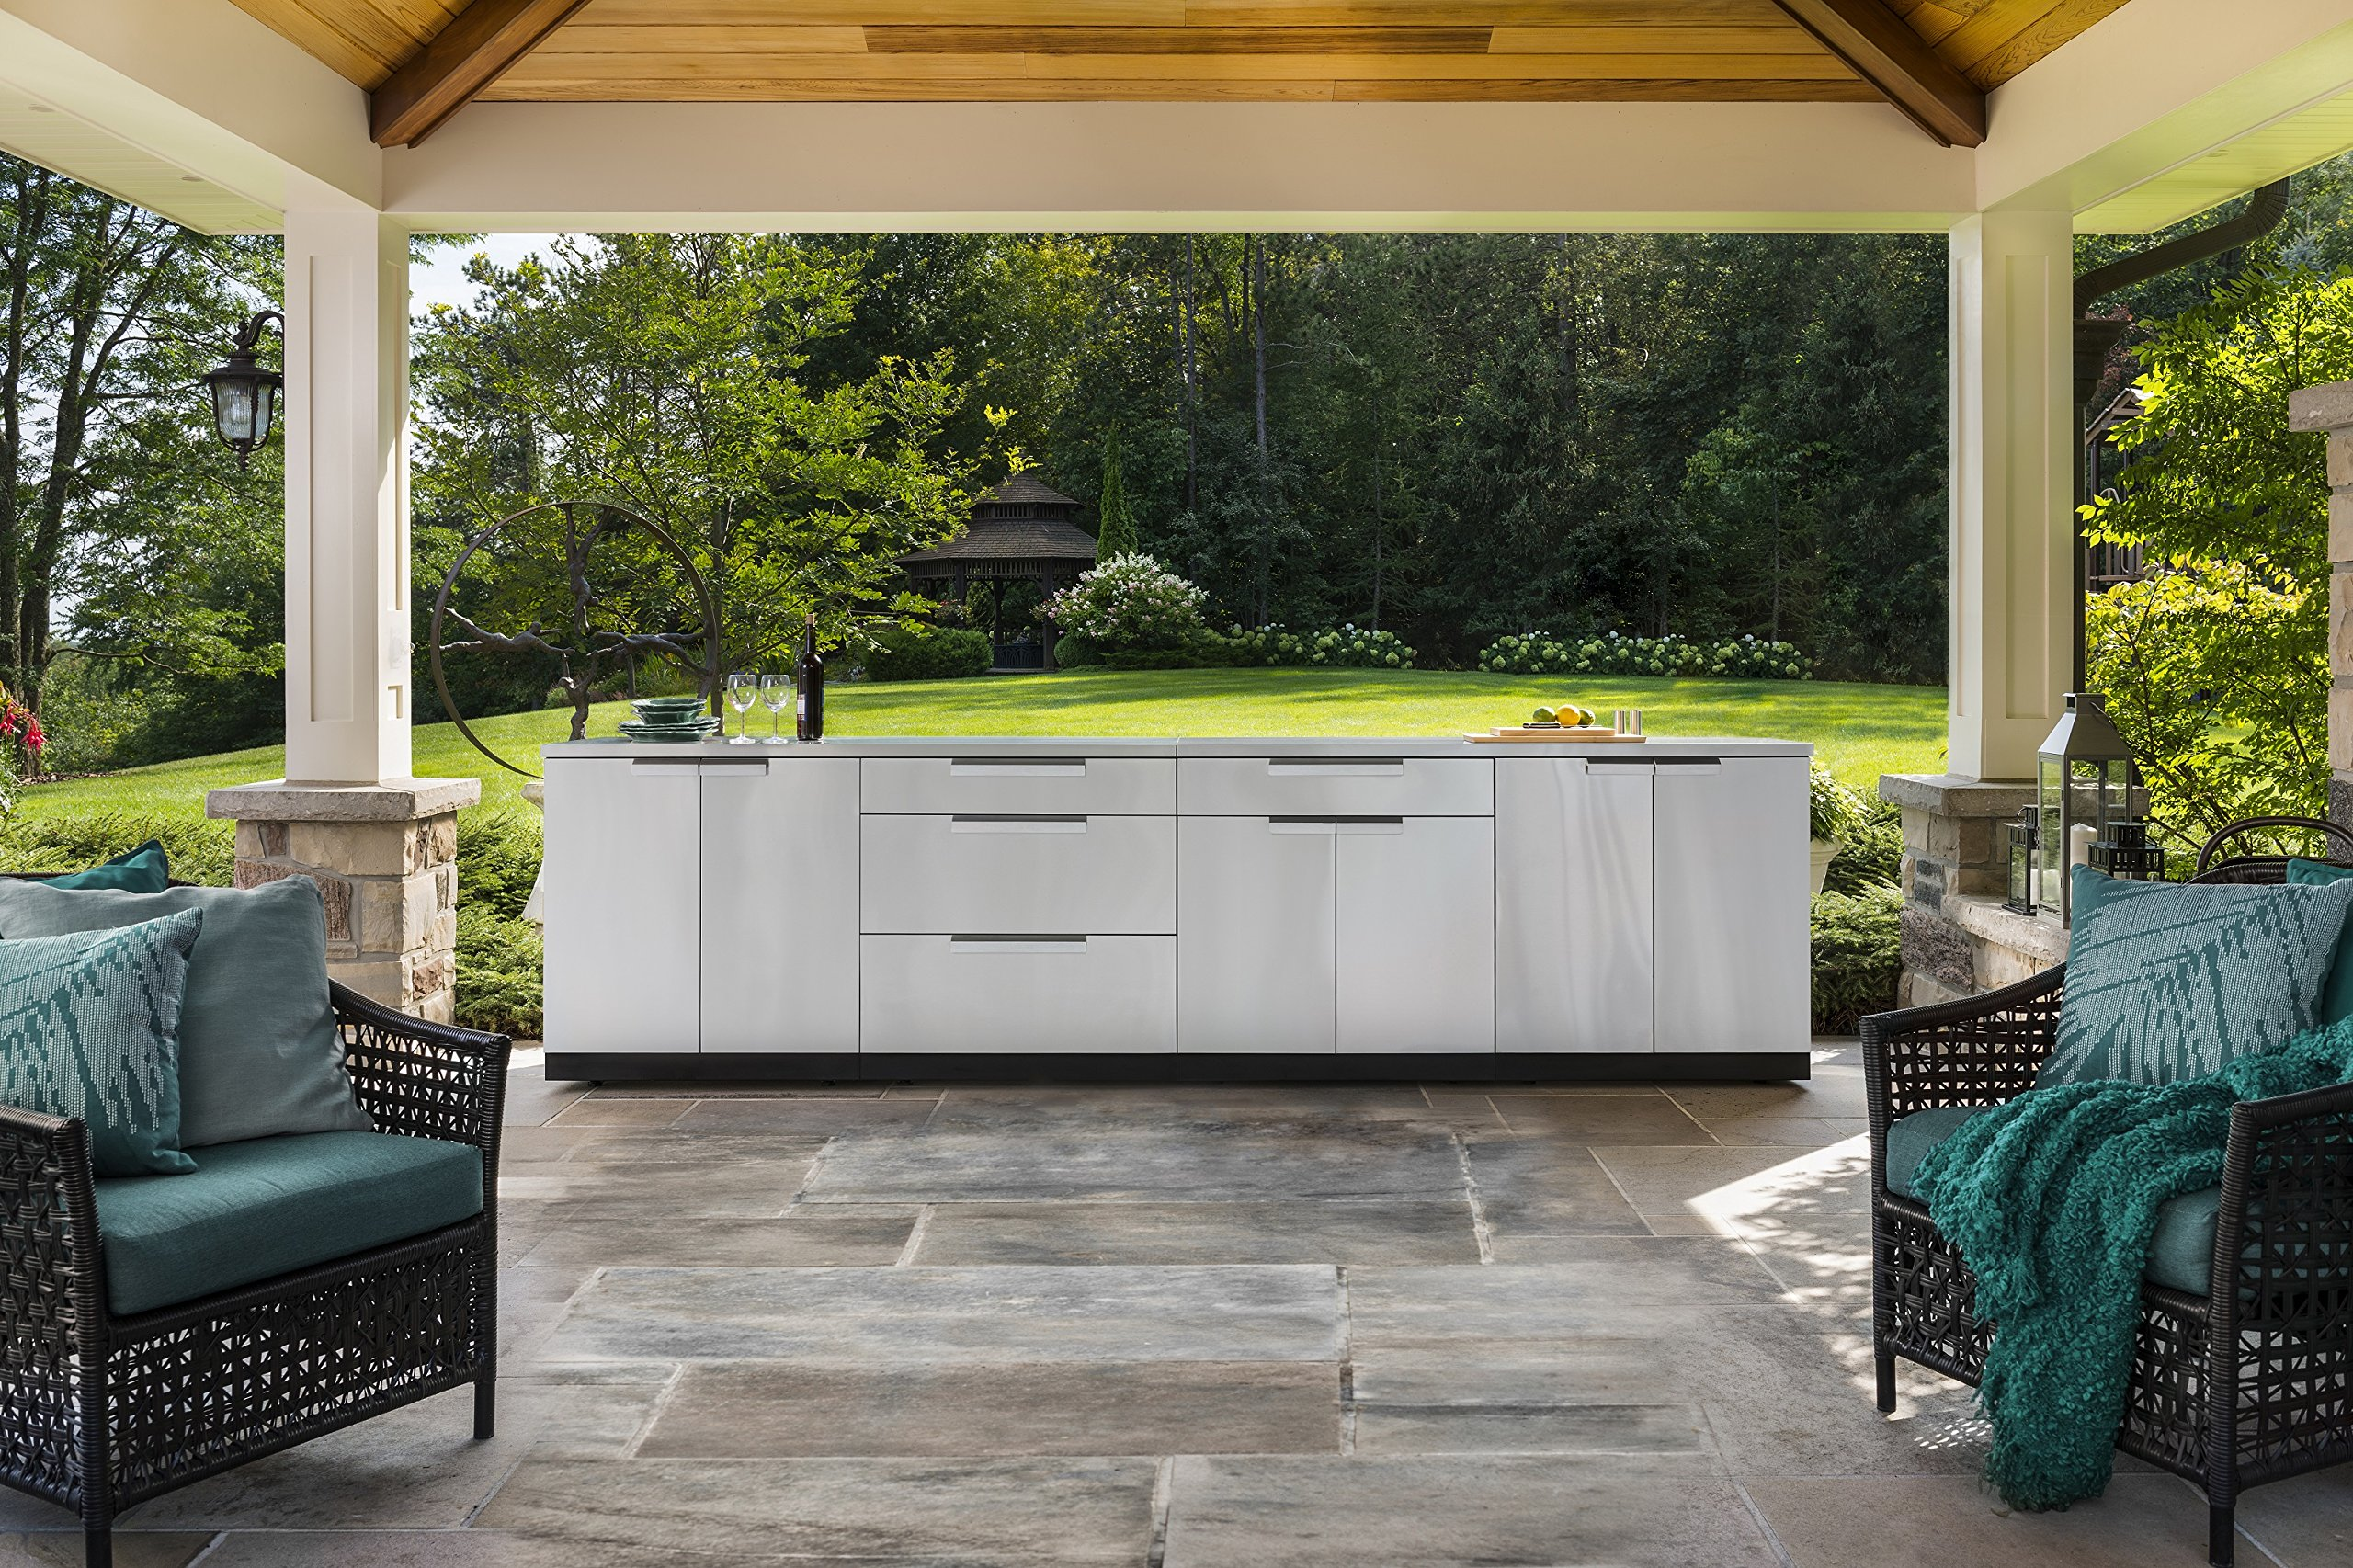 Newage Products Stainless Steel 3 Piece 92 In W X 36 5 In H X 24 In D Outdoor Kitchen Cabinet Set Without Countertop